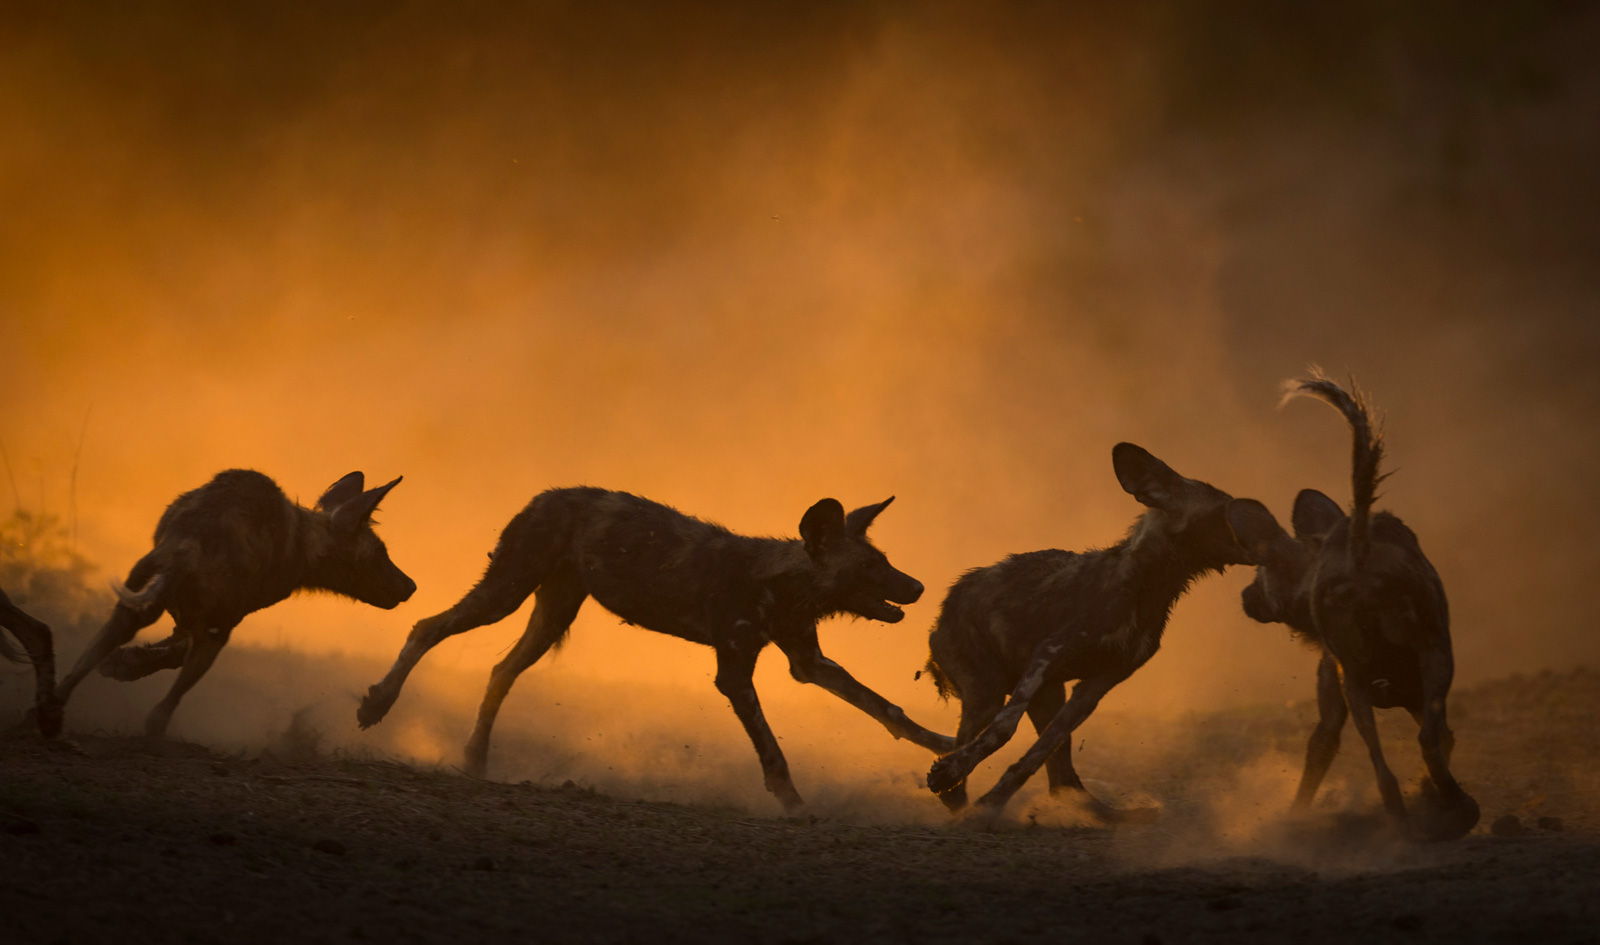 """""""Playtime in the dust"""" in Mana Pools National Park, Zimbabwe ©Jens Cullmann"""